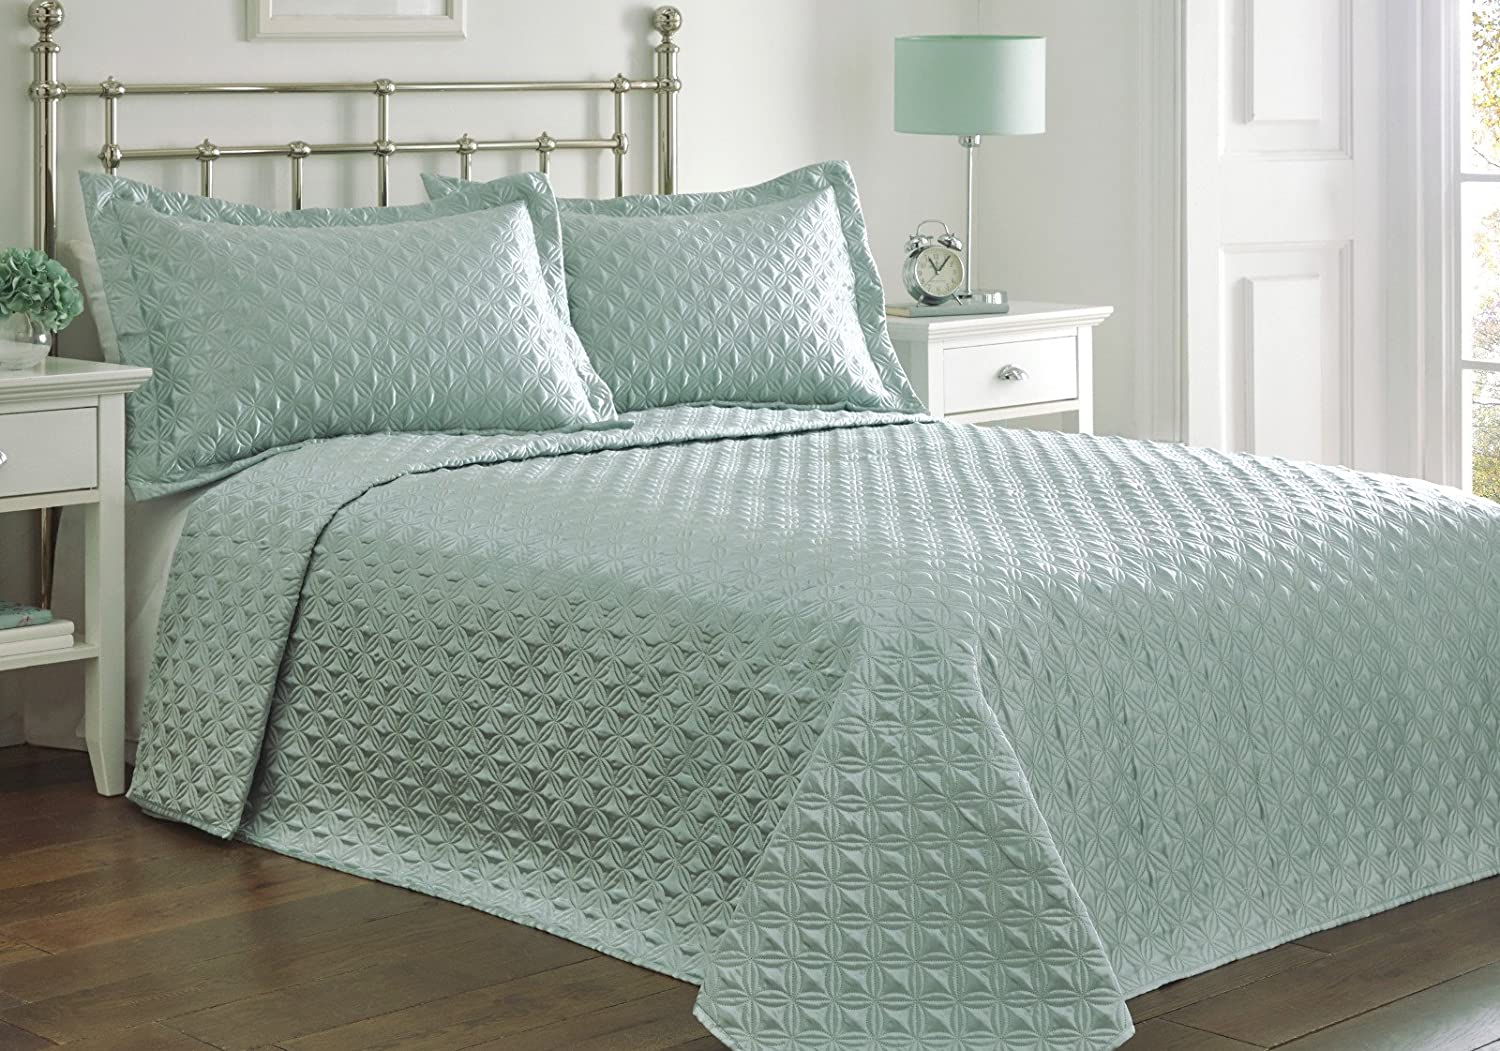 Portfolio Faux Silk Bedspread And 2 Pillowcase Quilted Throw Over Set,  Polyester, Mint Blue Green, Double: Amazon.co.uk: Kitchen U0026 Home